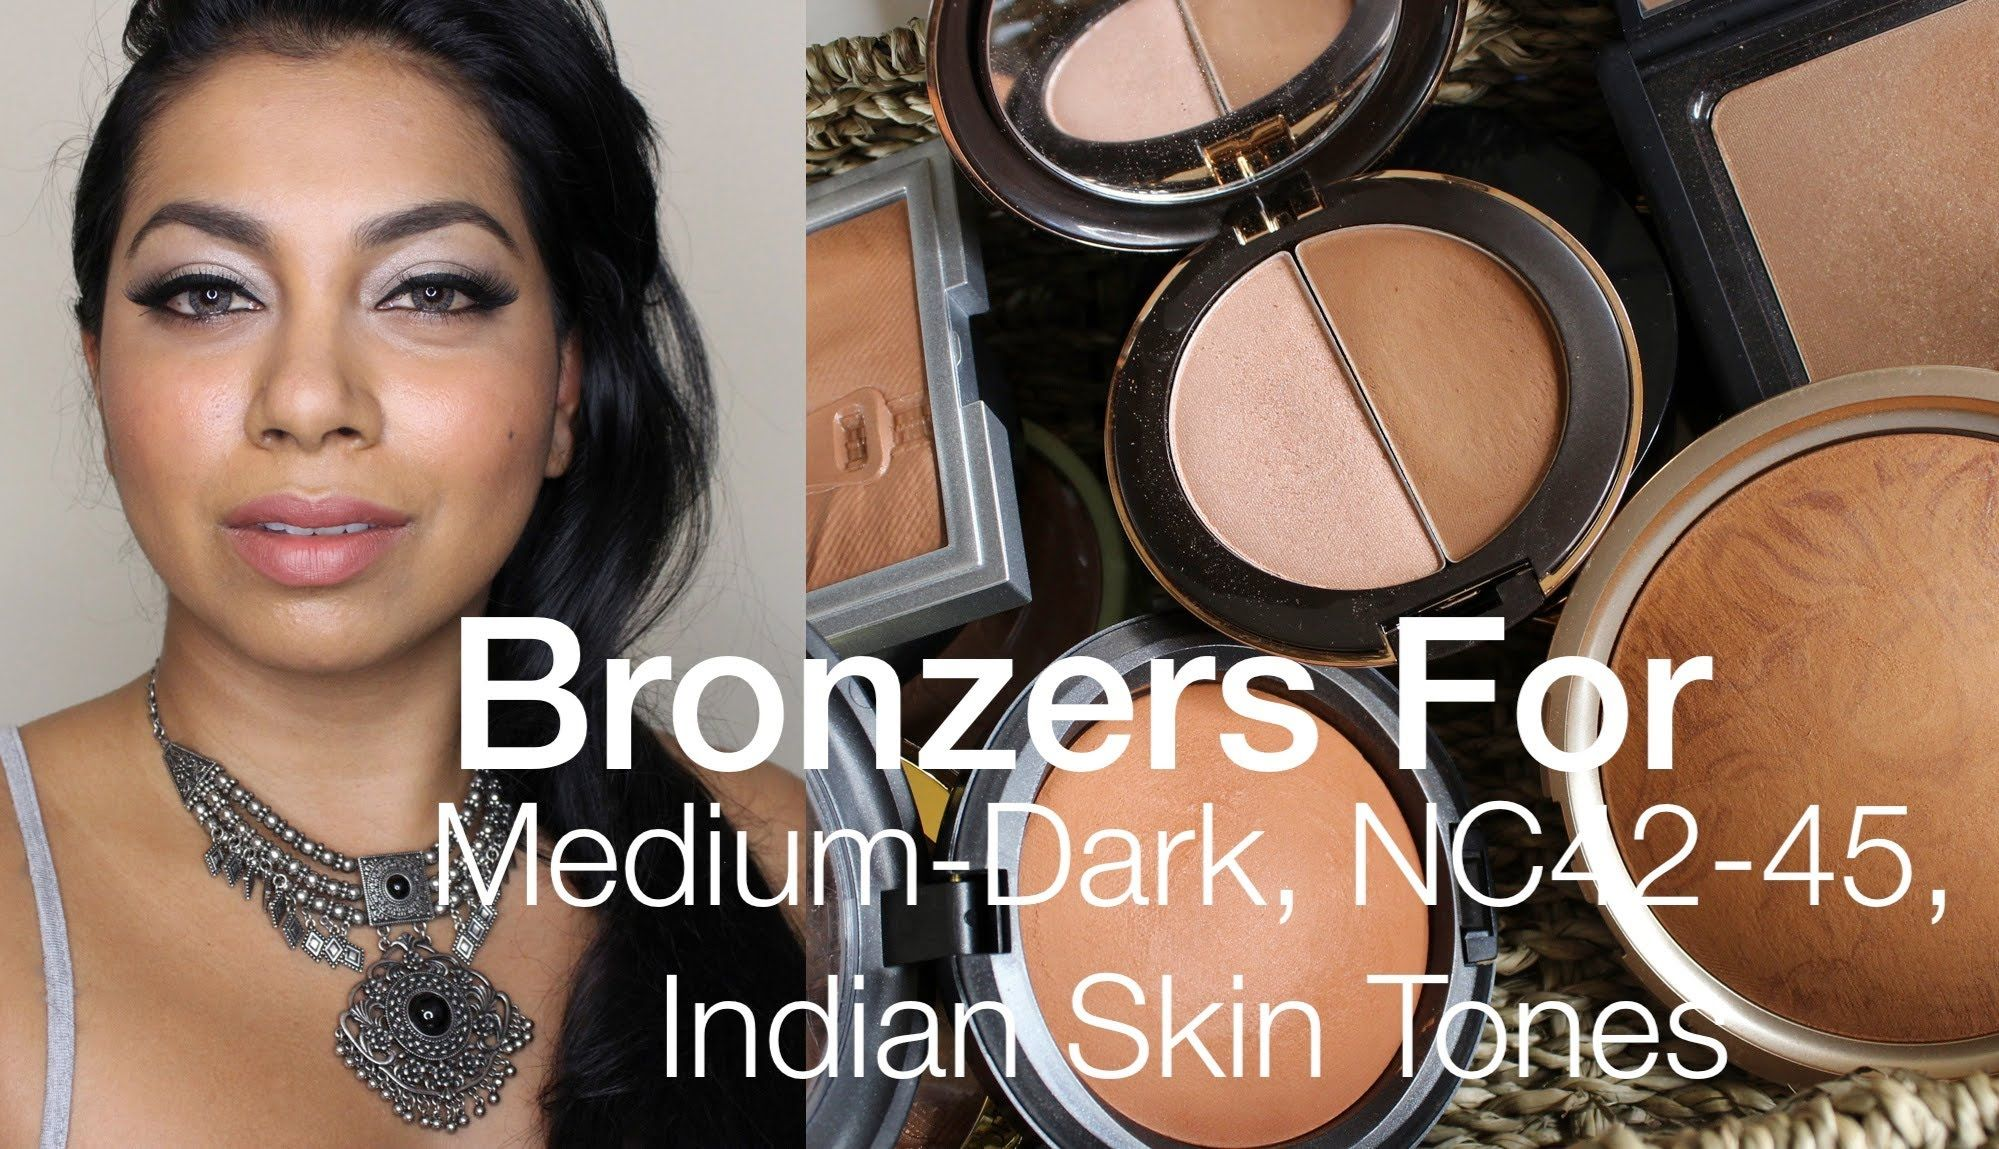 Bronzers for medium dark indian asian desi nc42 nc45 skin bronzers for medium dark indian asian desi skin tones baditri Gallery